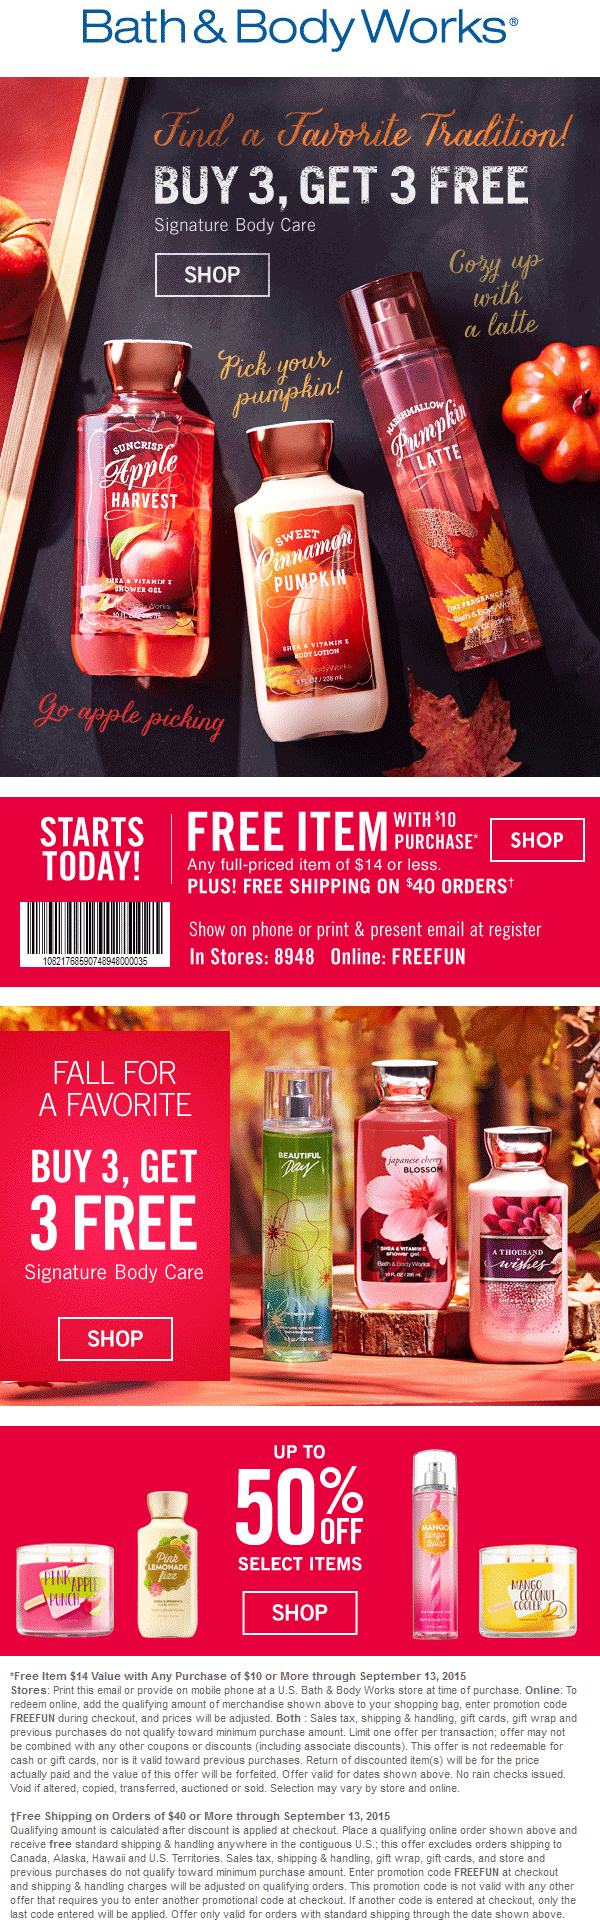 Bath & Body Works Coupon August 2017 $14 item free with $10 spent at Bath & Body Works, or online via promo code FREEFUN